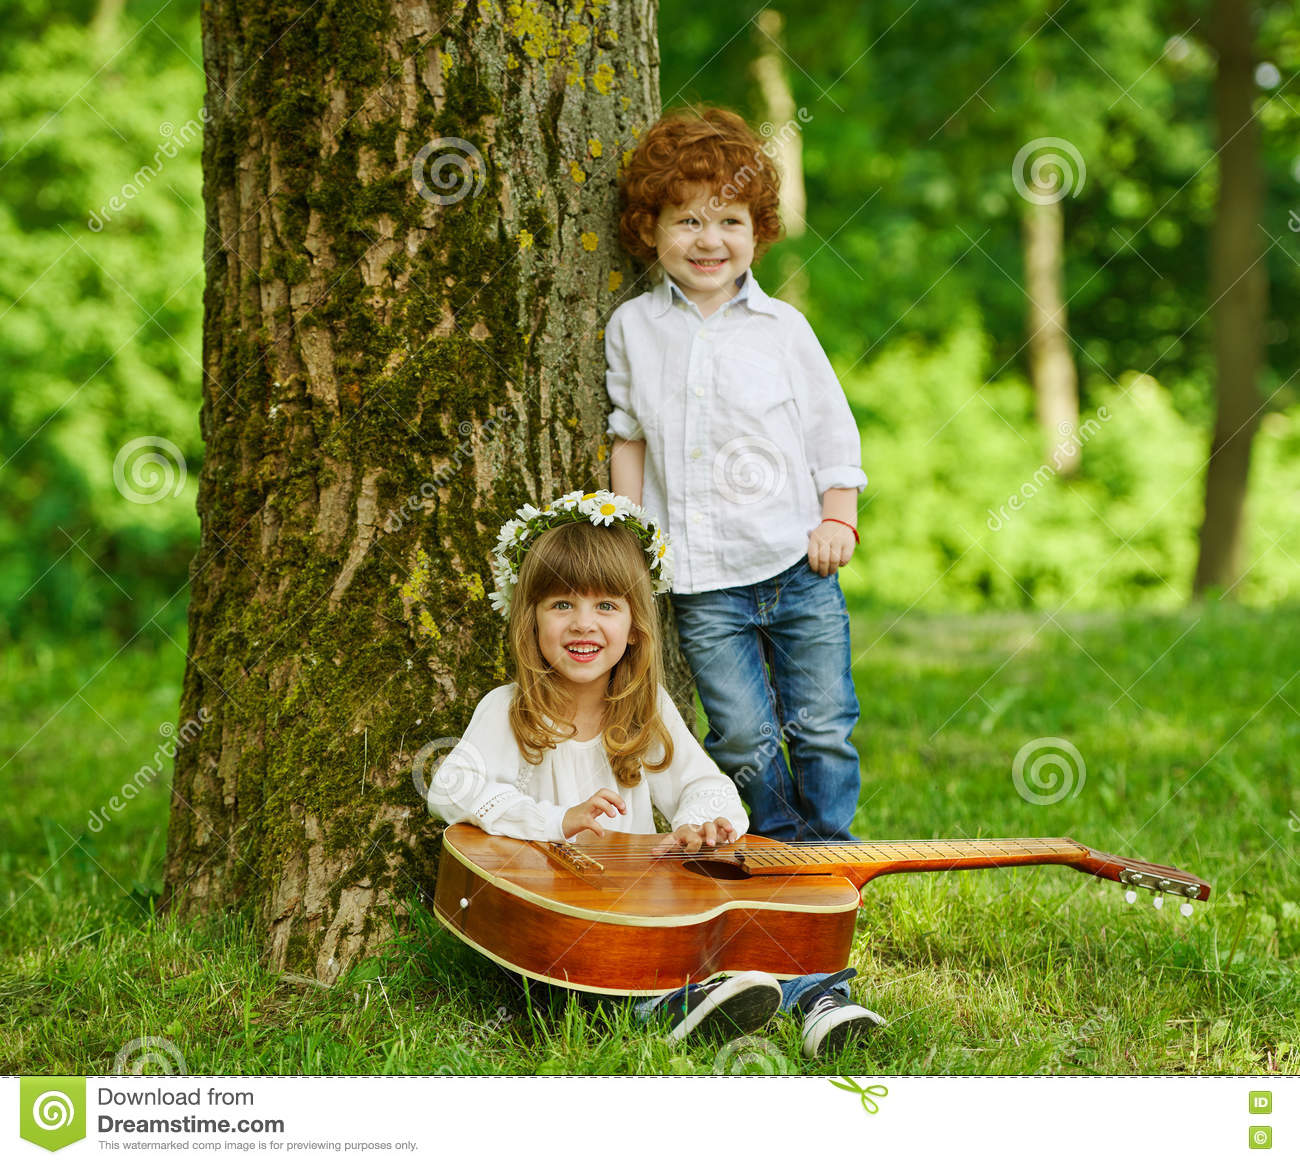 cute children playing guitar stock image - image of beautiful